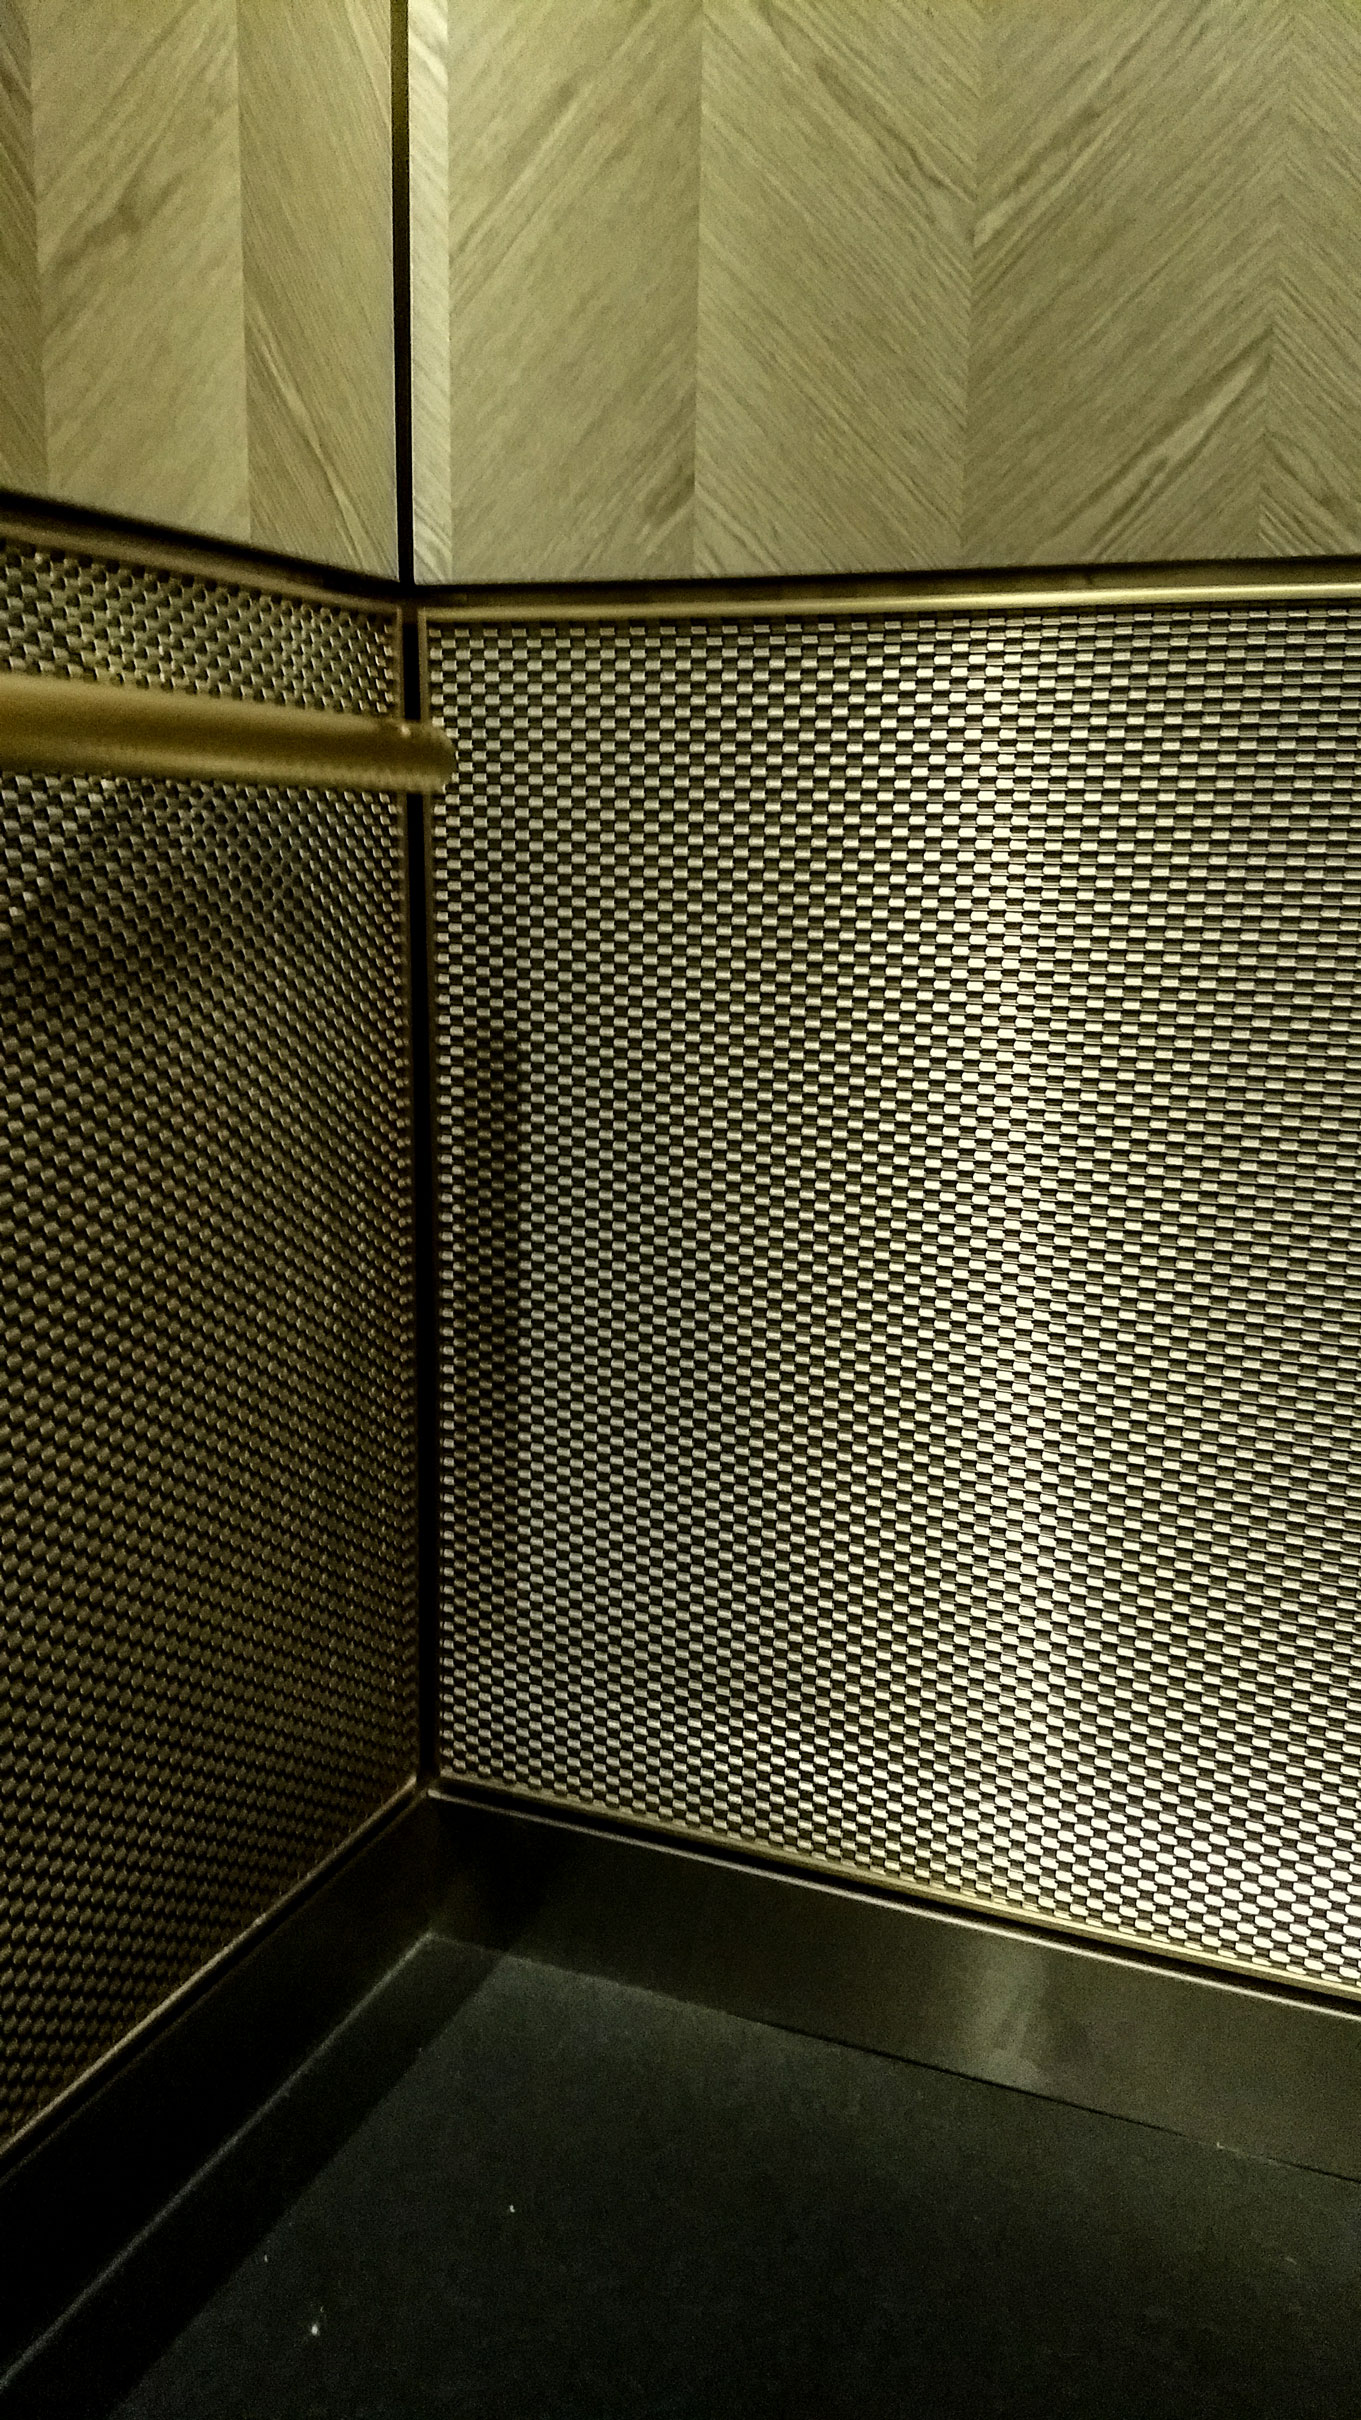 DS-1 is a flat wire architectural mesh pattern used most frequently in surfacing applications.